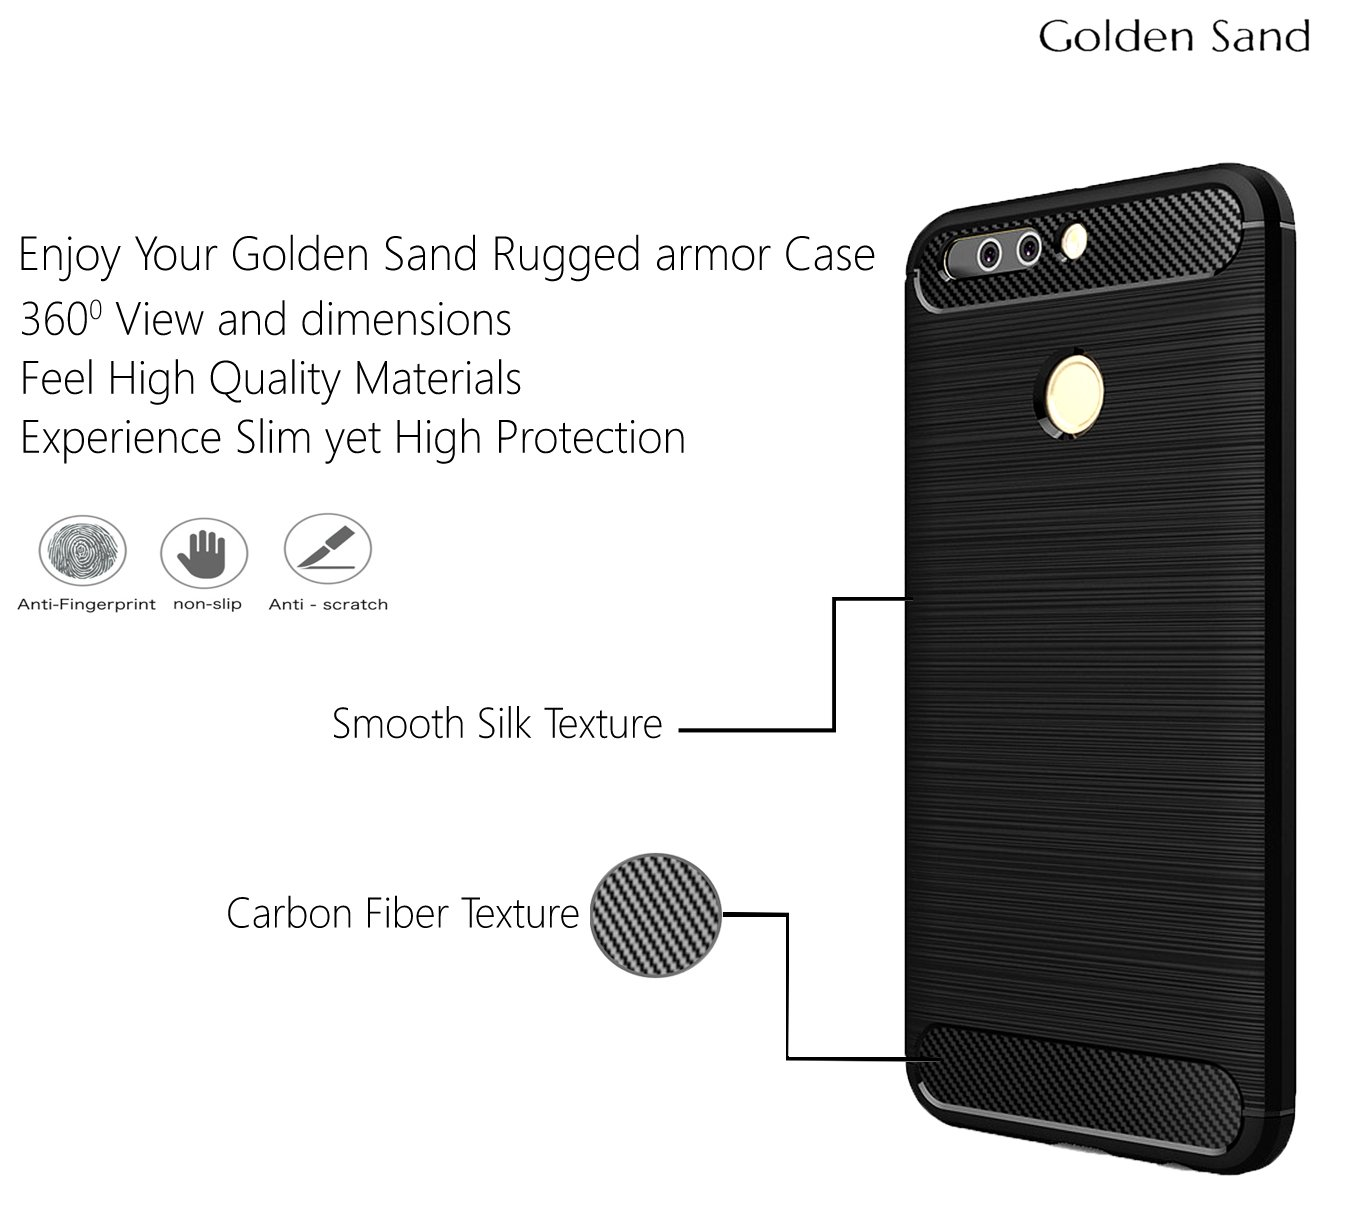 Golden Sand Armor Shockproof Case For Huawei Honor 8 Iphone 9 Spigen Anti Shock With Stand Tough Original Casing Electronics